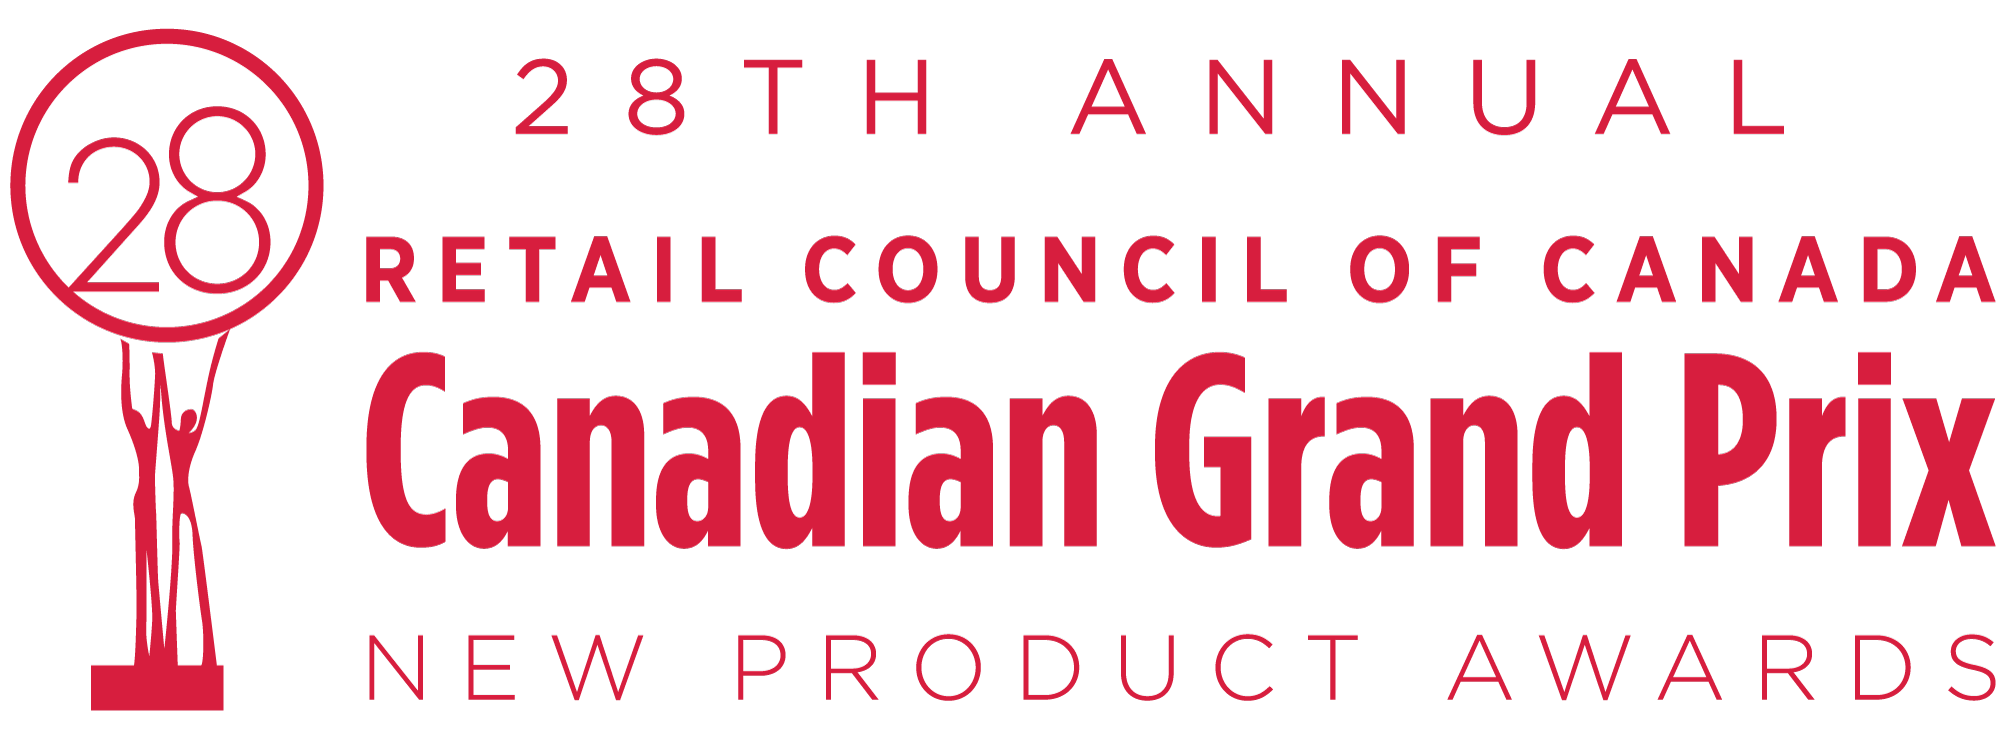 28th Canadian Grand Prix New Product Awards